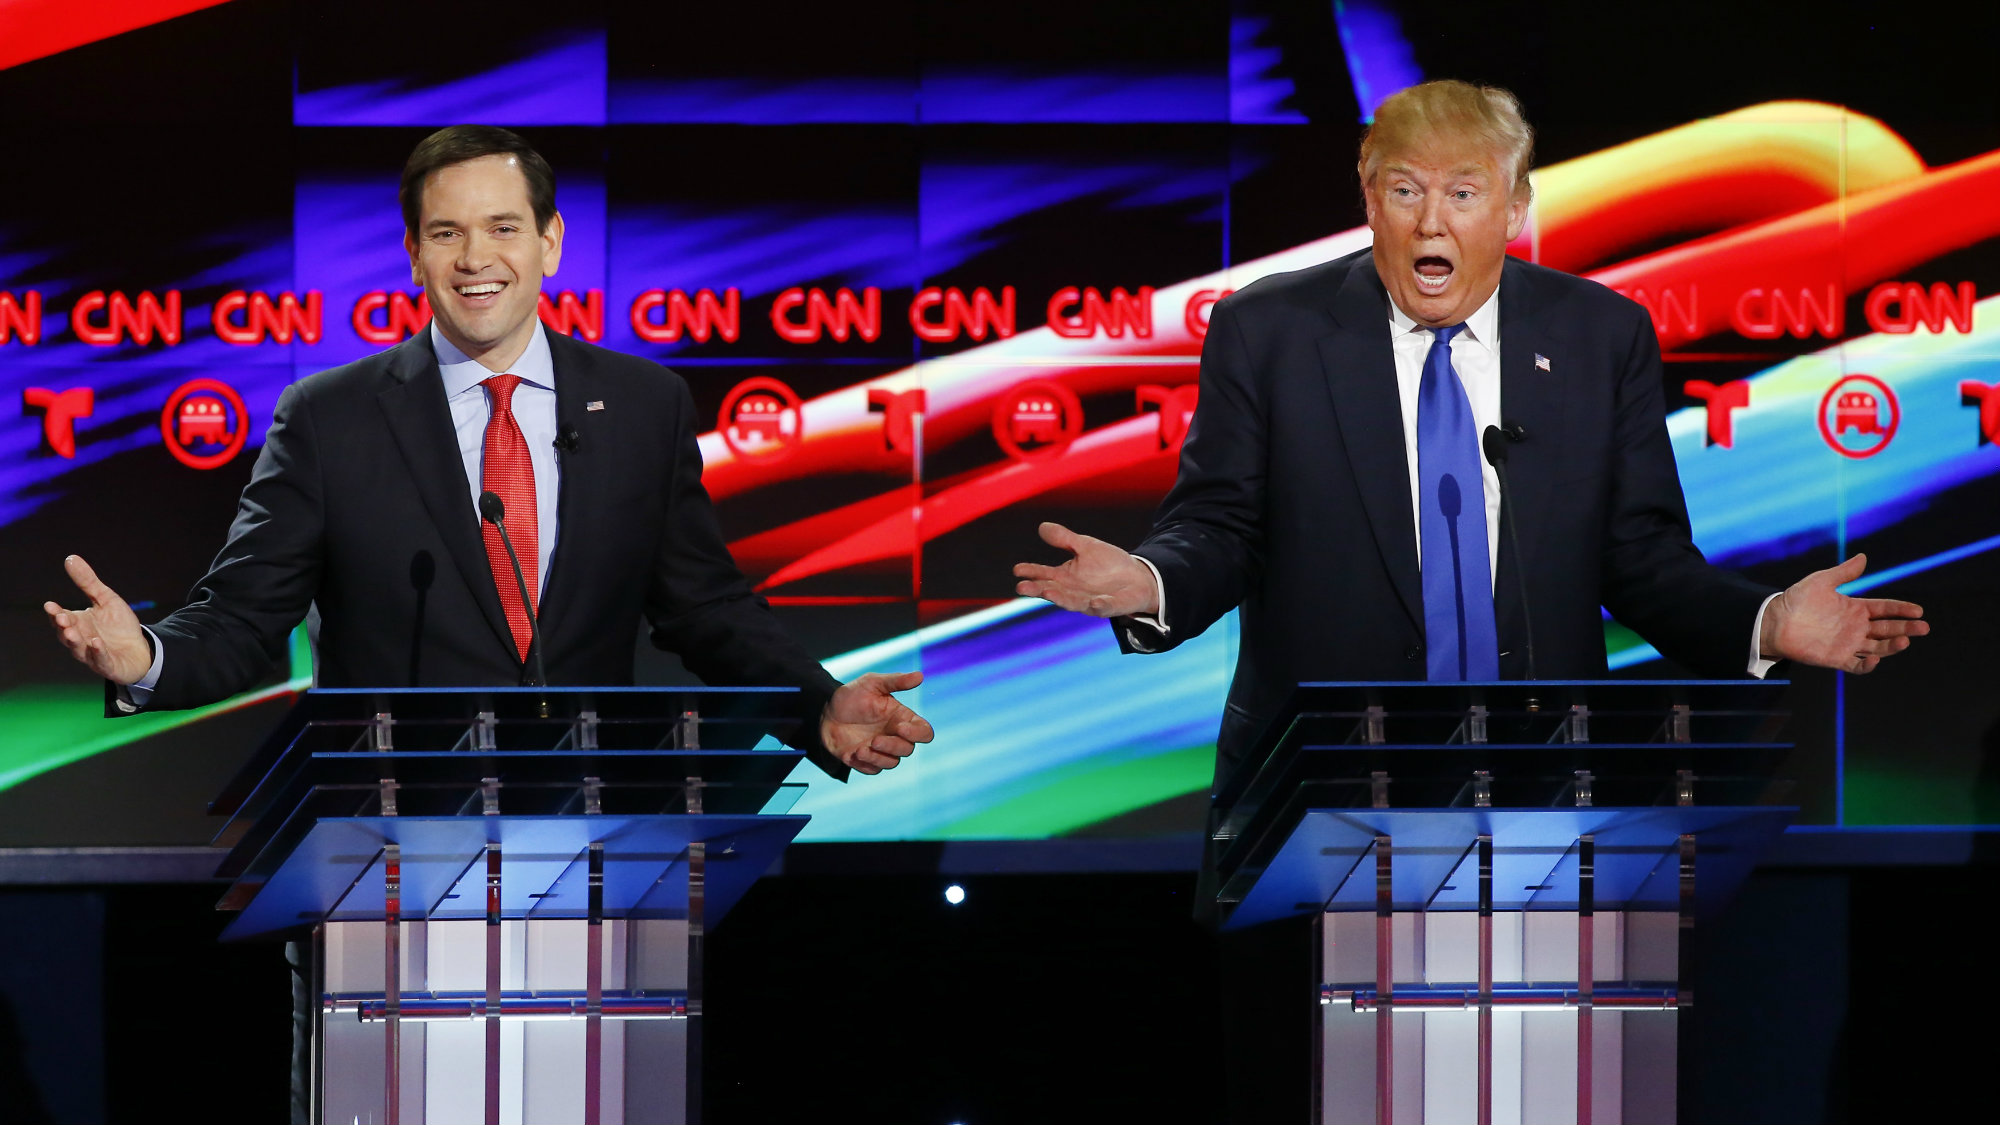 Marco Rubio and Donald Trump react to each other as they discuss an issue during the debate sponsored by CNN for the 2016 Republican U.S. presidential candidates in Houston, Texas, February 25, 2016.